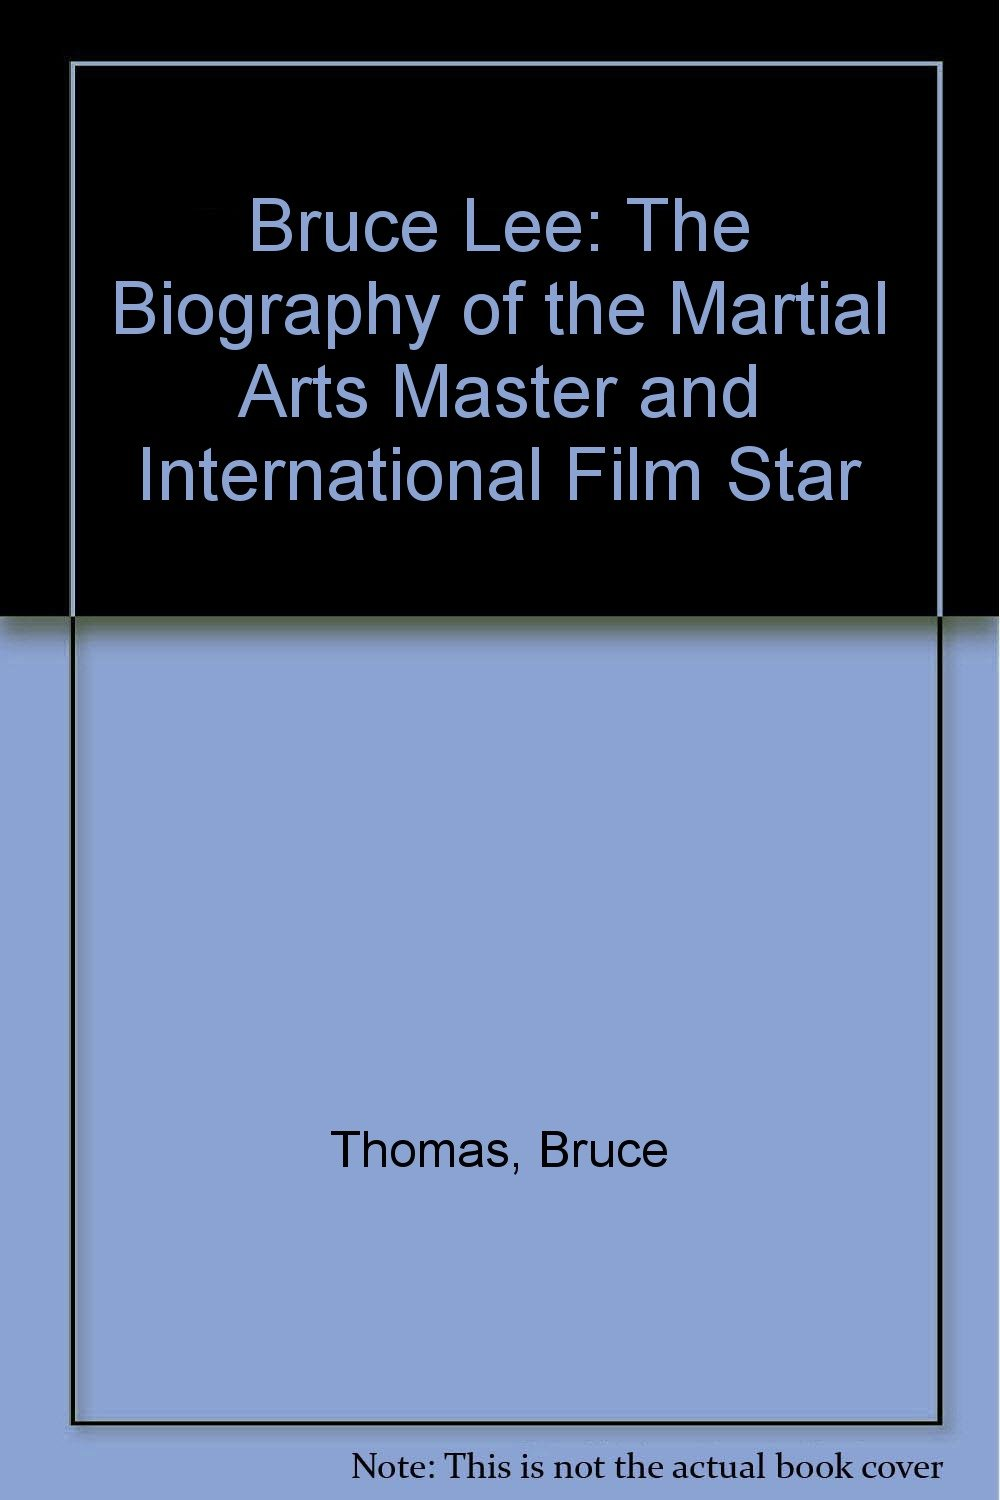 Bruce Lee: The Biography of the Martial Arts Master and International Film Star